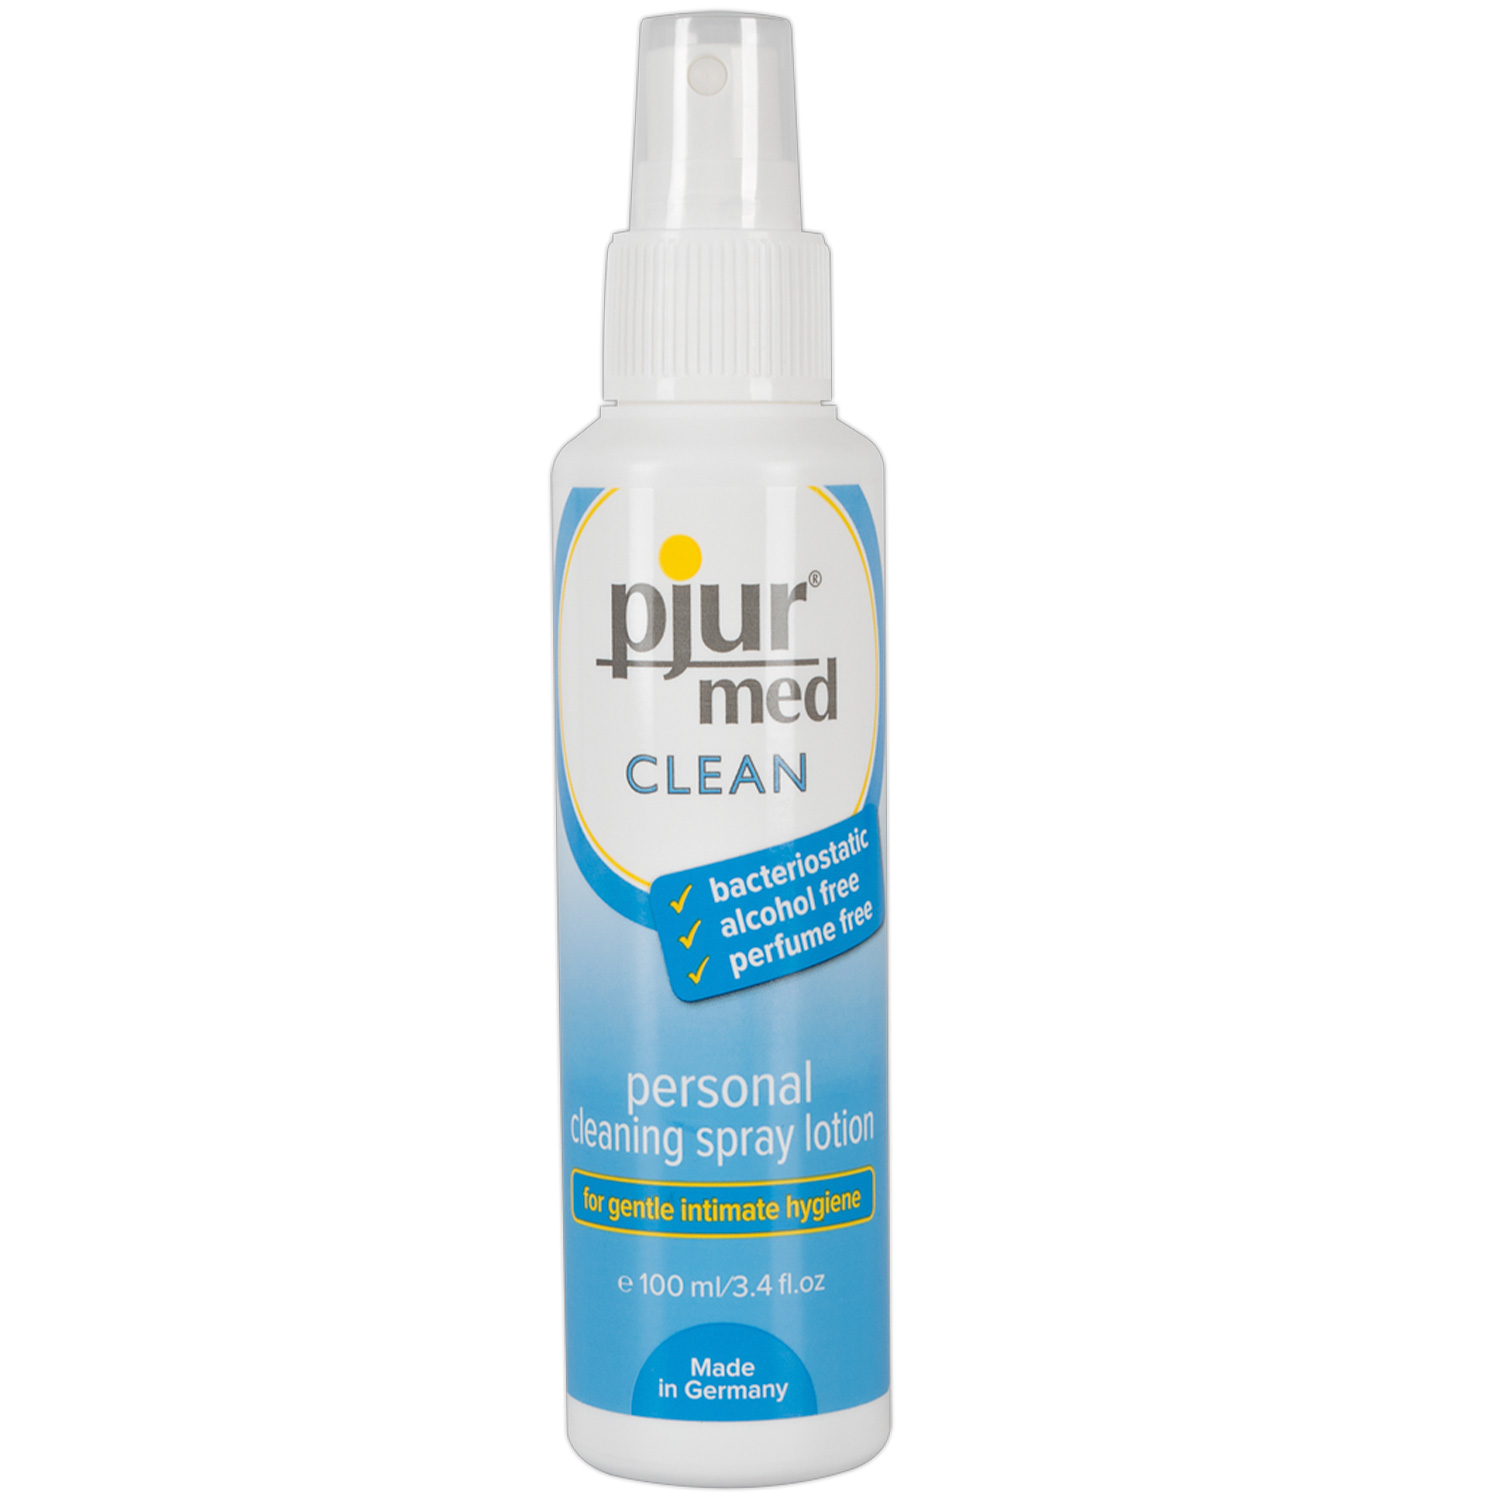 Pjur MED Clean Intim Spray 100 ml thumbnail